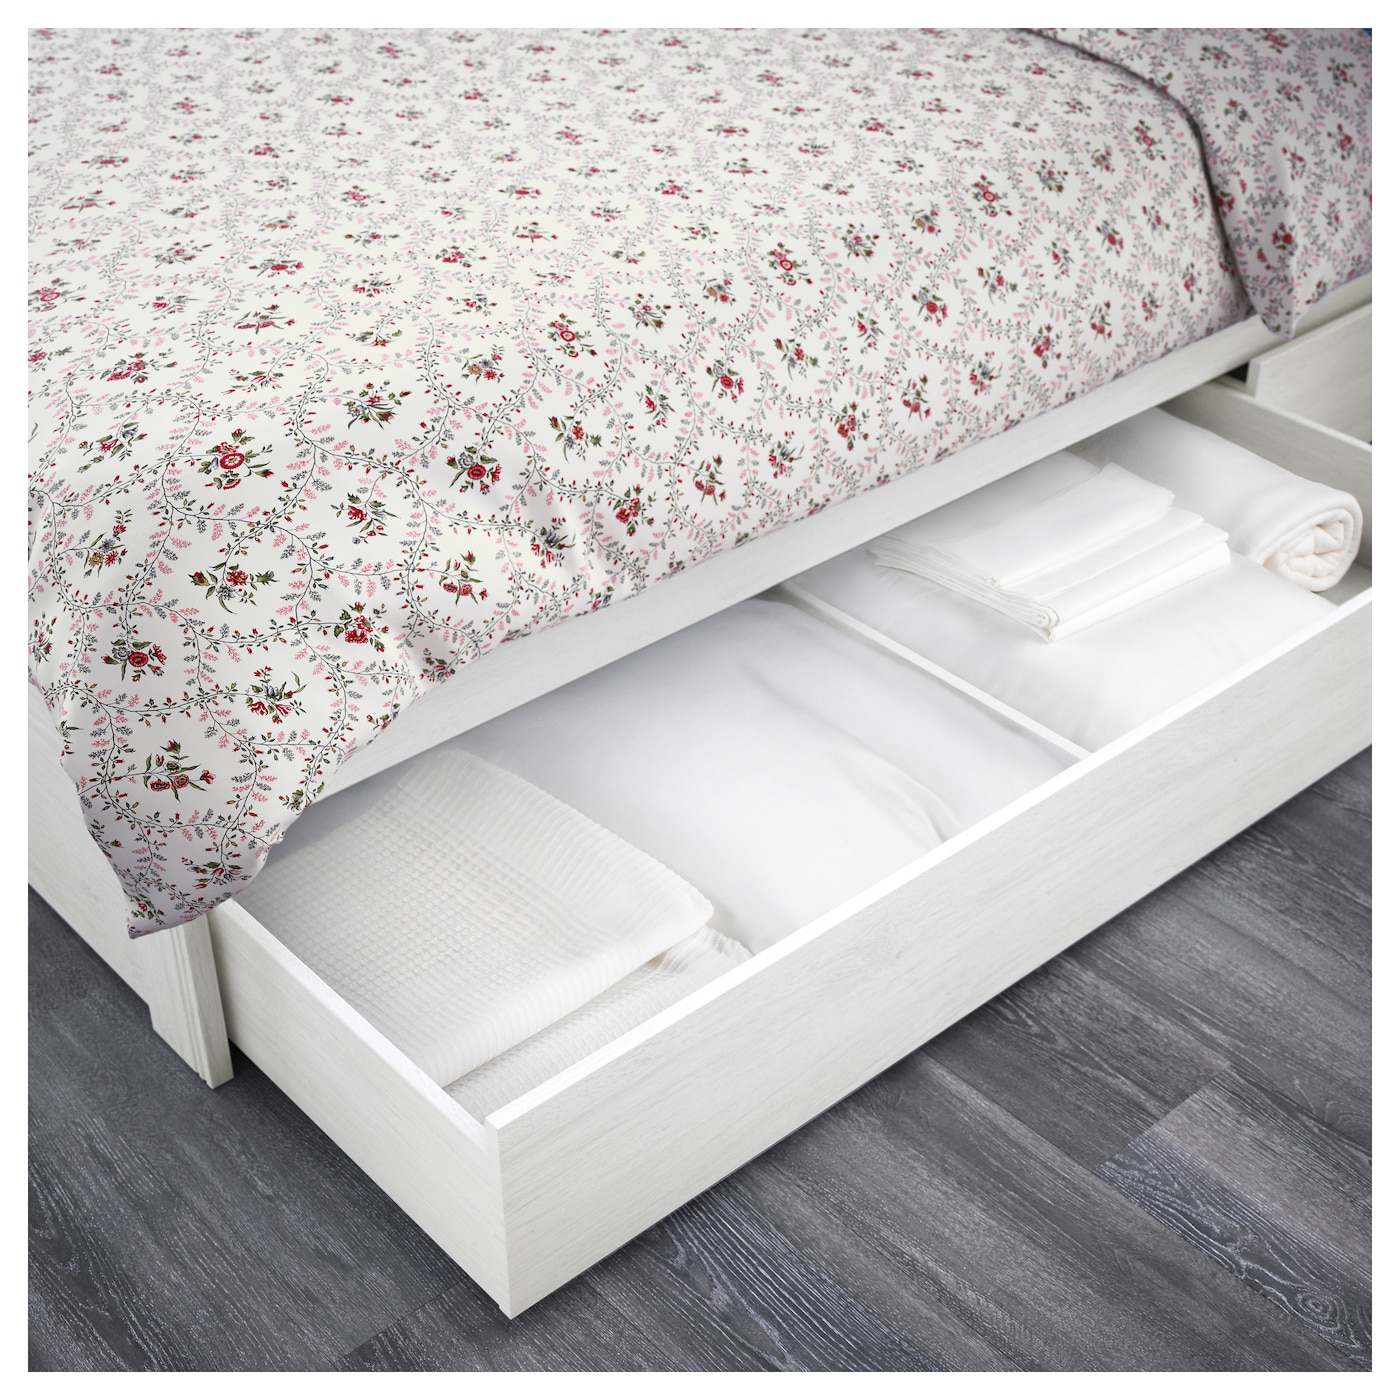 bed frame storage brusali bed frame with 2 storage boxes white 140x200 cm ikea 10239